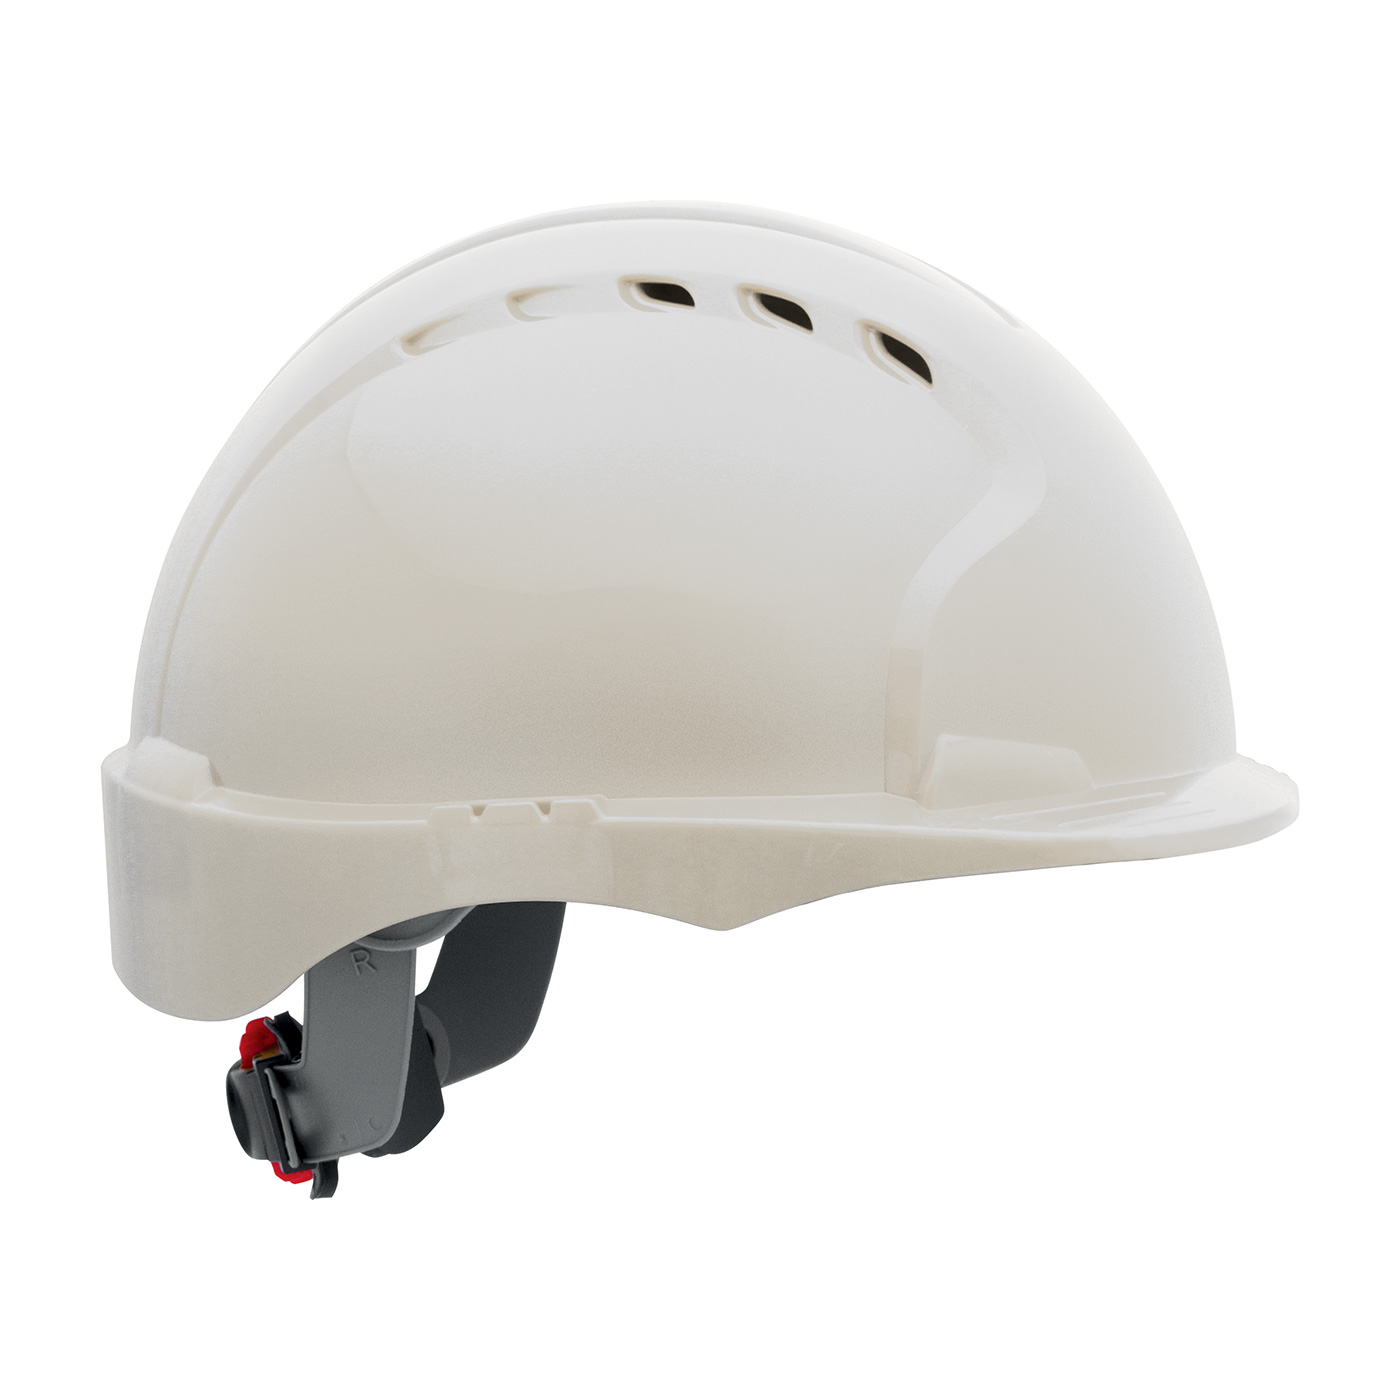 280-EV6151SV PIP® Evolution® Deluxe 6151 Vented, Short Brim Hard Hat with HDPE Shell, 6-Point Polyester Suspension and Wheel Ratchet Adjustment - White